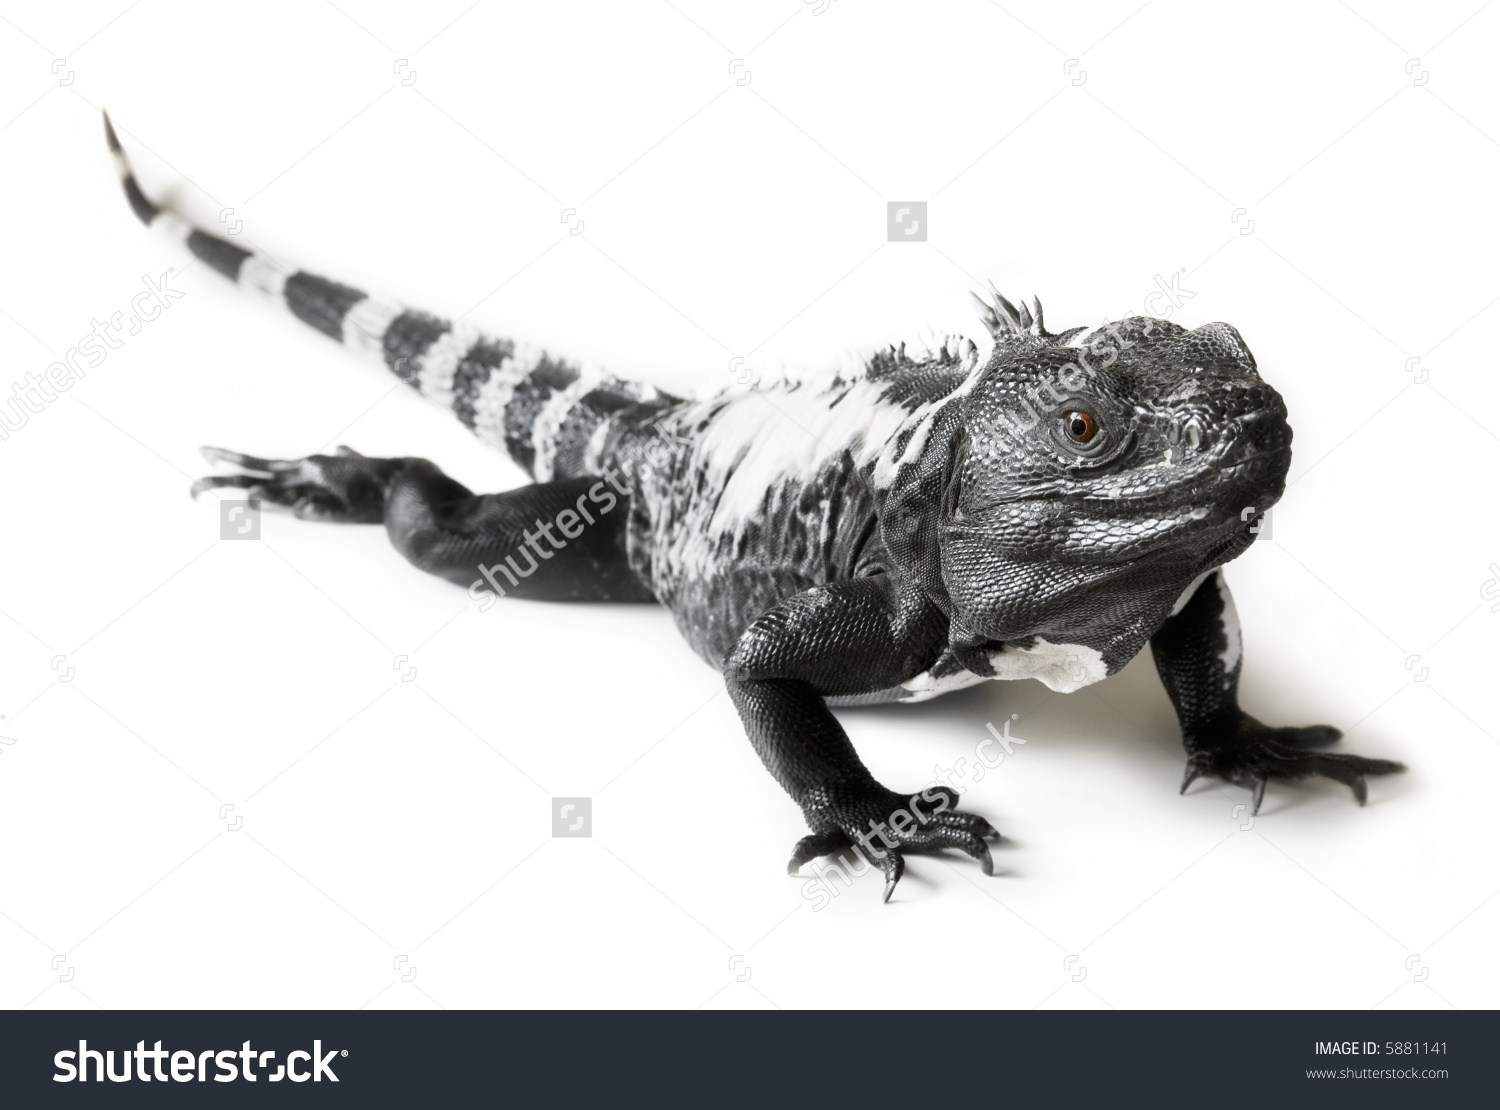 Black Spiny Tailed Iguana clipart #5, Download drawings